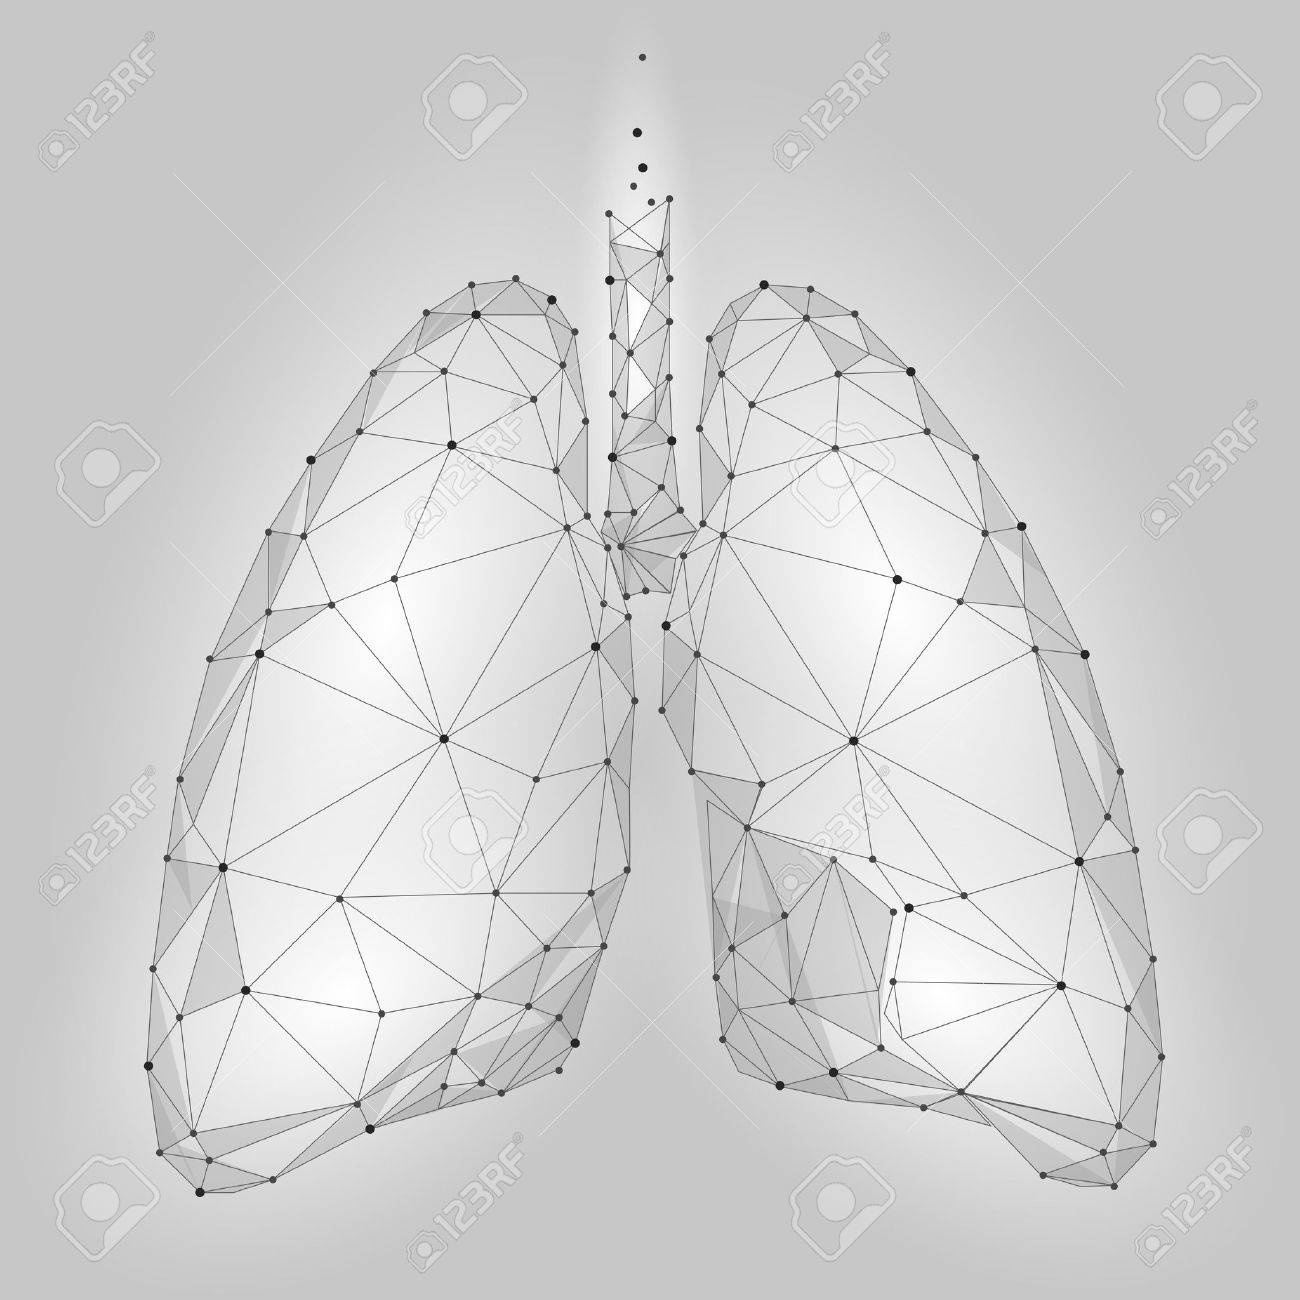 Human Internal Organ Lungs. Low Poly technology design. White Gray color polygonal triangle connected dots. Health medicine icon background vector illustration - 82816675